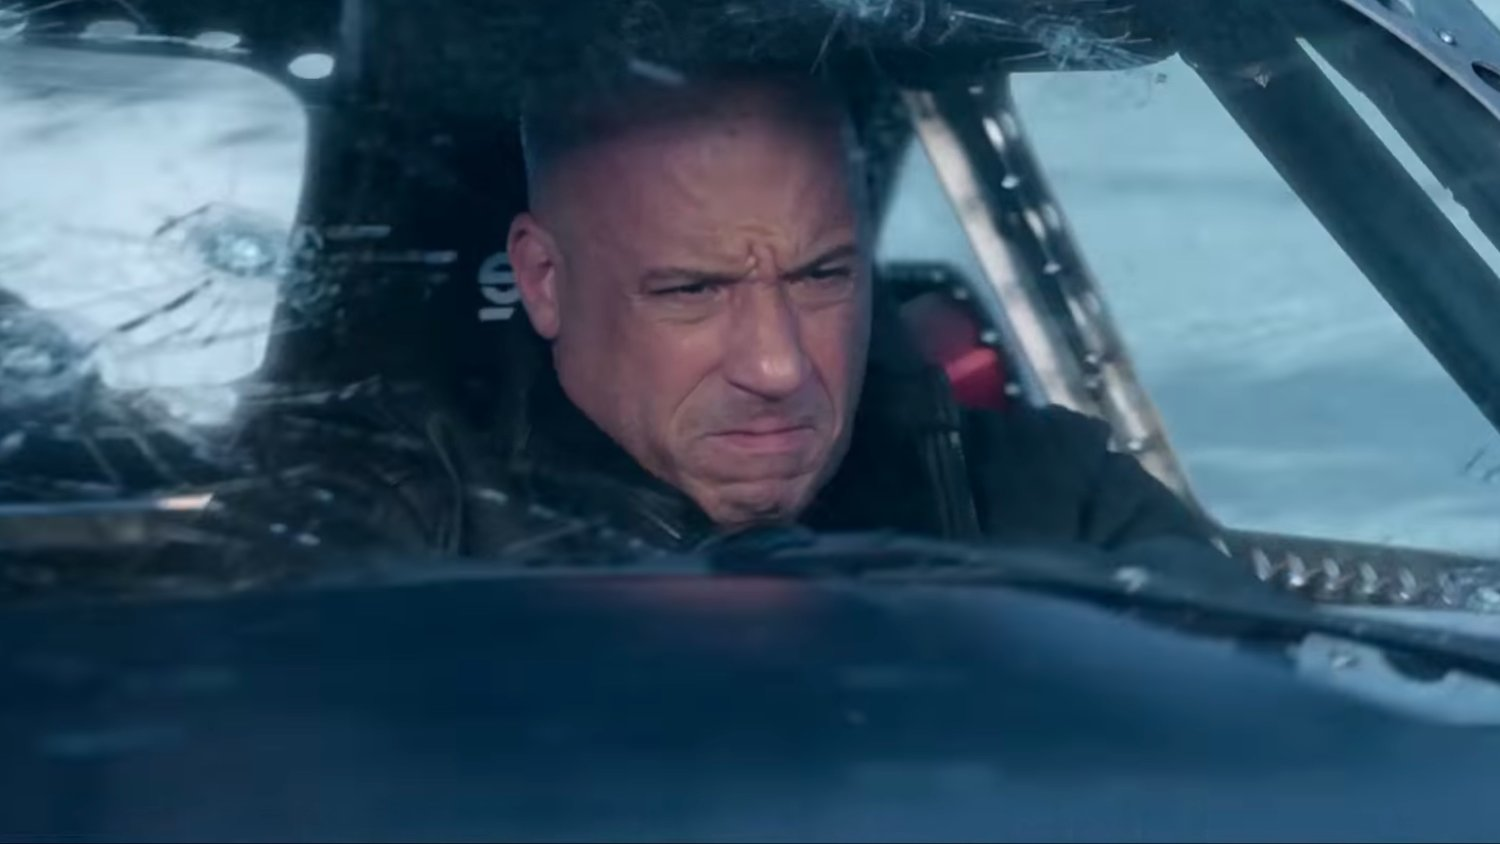 The Super Bowl Spot for THE FATE OF THE FURIOUS Offers Some High Octane Thrills!